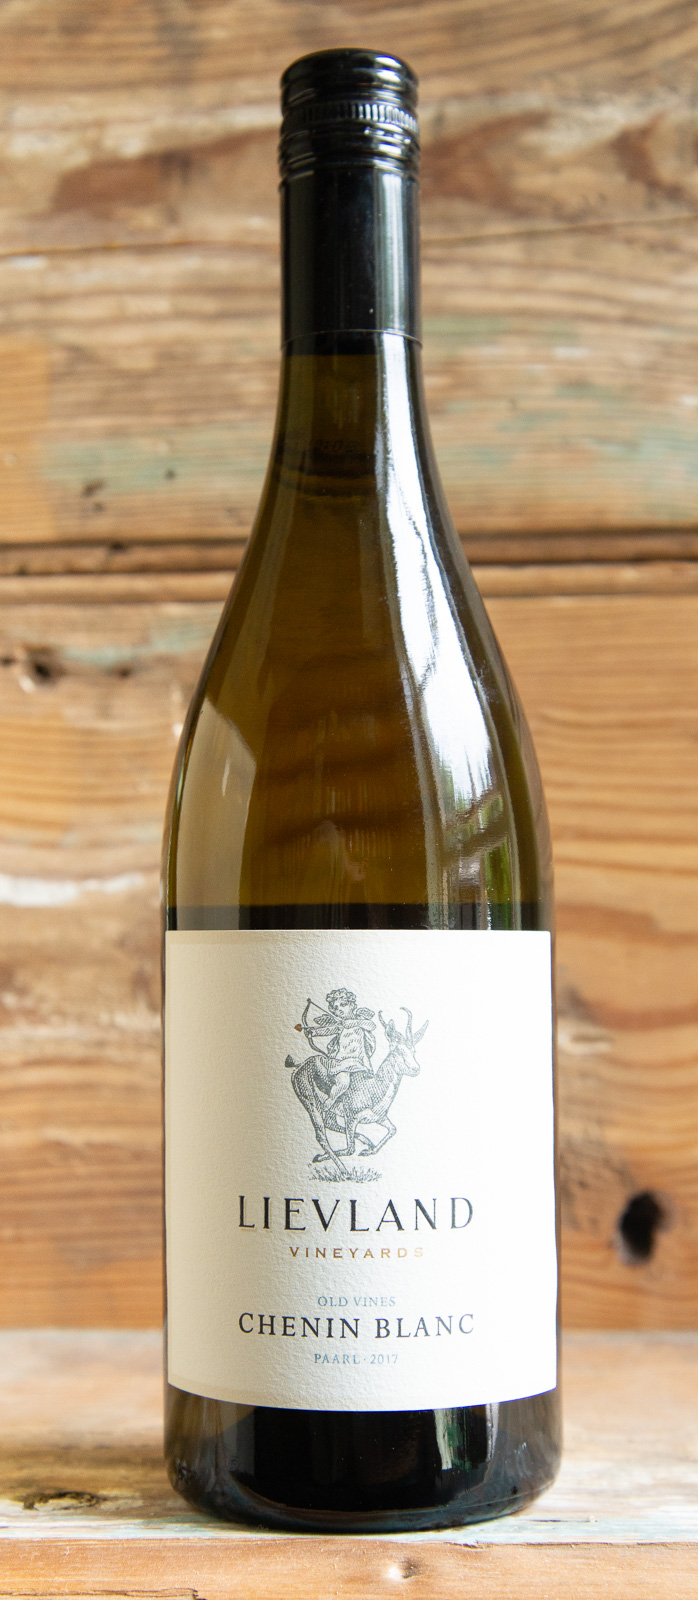 Lievland Vineyards Chenin Blanc 2017 - Origin: South AfricaRetail: $22.95 | Sale: $20.65Lievland's history dates back to 1715, when the original farm was granted to the ex-soldier Jurie Hanekom. Lievland lies on the western slopes of the Simonsberg mountains between Stellenbosch and Paarl, two of the most prominent wine-growing areas in the Cape. This wine is representative of the versatility of old vine Chenin Blanc. Notes of white peach, citrus and pineapple welcome you into the glass. The palate has a rich and ripe mouthfeel balanced with vibrant acidity which contributes to the lingering zesty finish. The freshness and complexity of this wine will enable it to develop gracefully over the next 5 -7 years. This Chenin can easily be enjoyed on its own, but can also complement dishes with pork or a creamy seafood recipe.100% Chenin Blanc